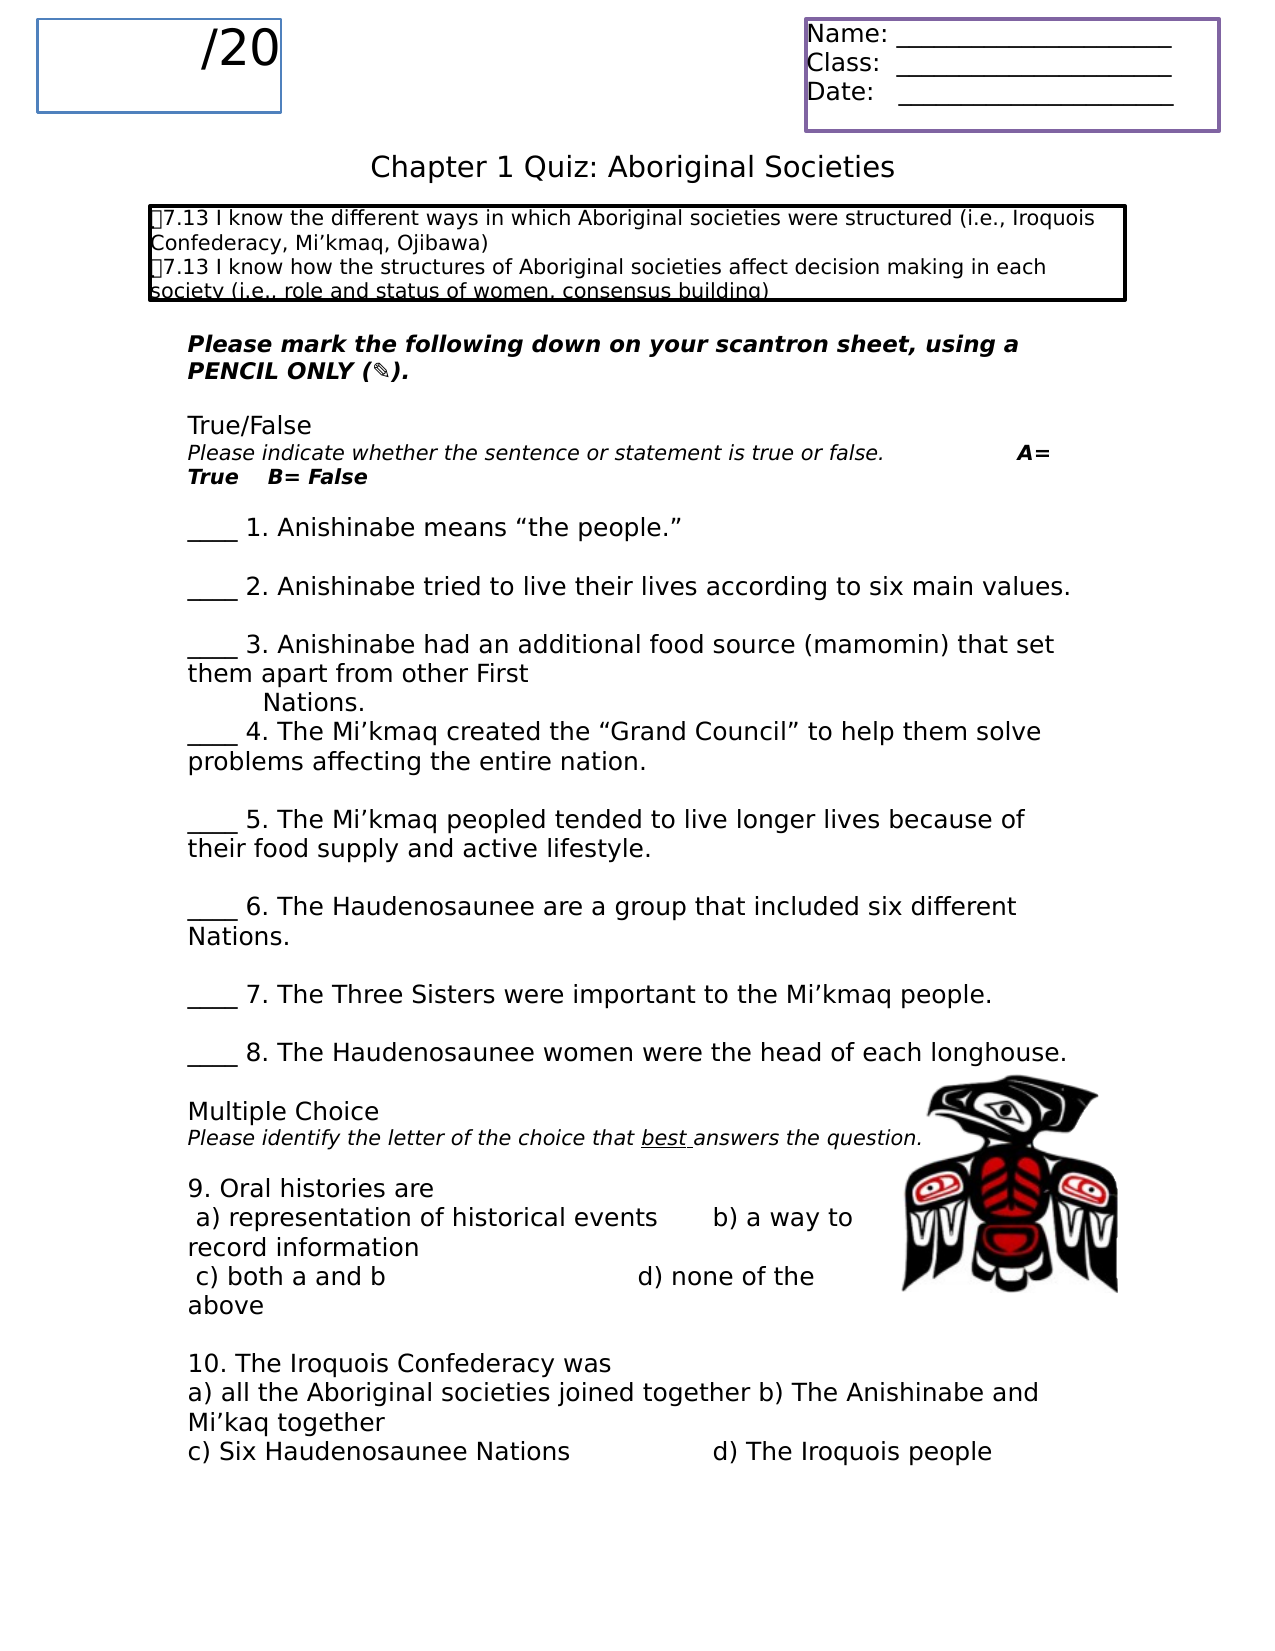 Our canada textbook grade 7 pdf chapter 7